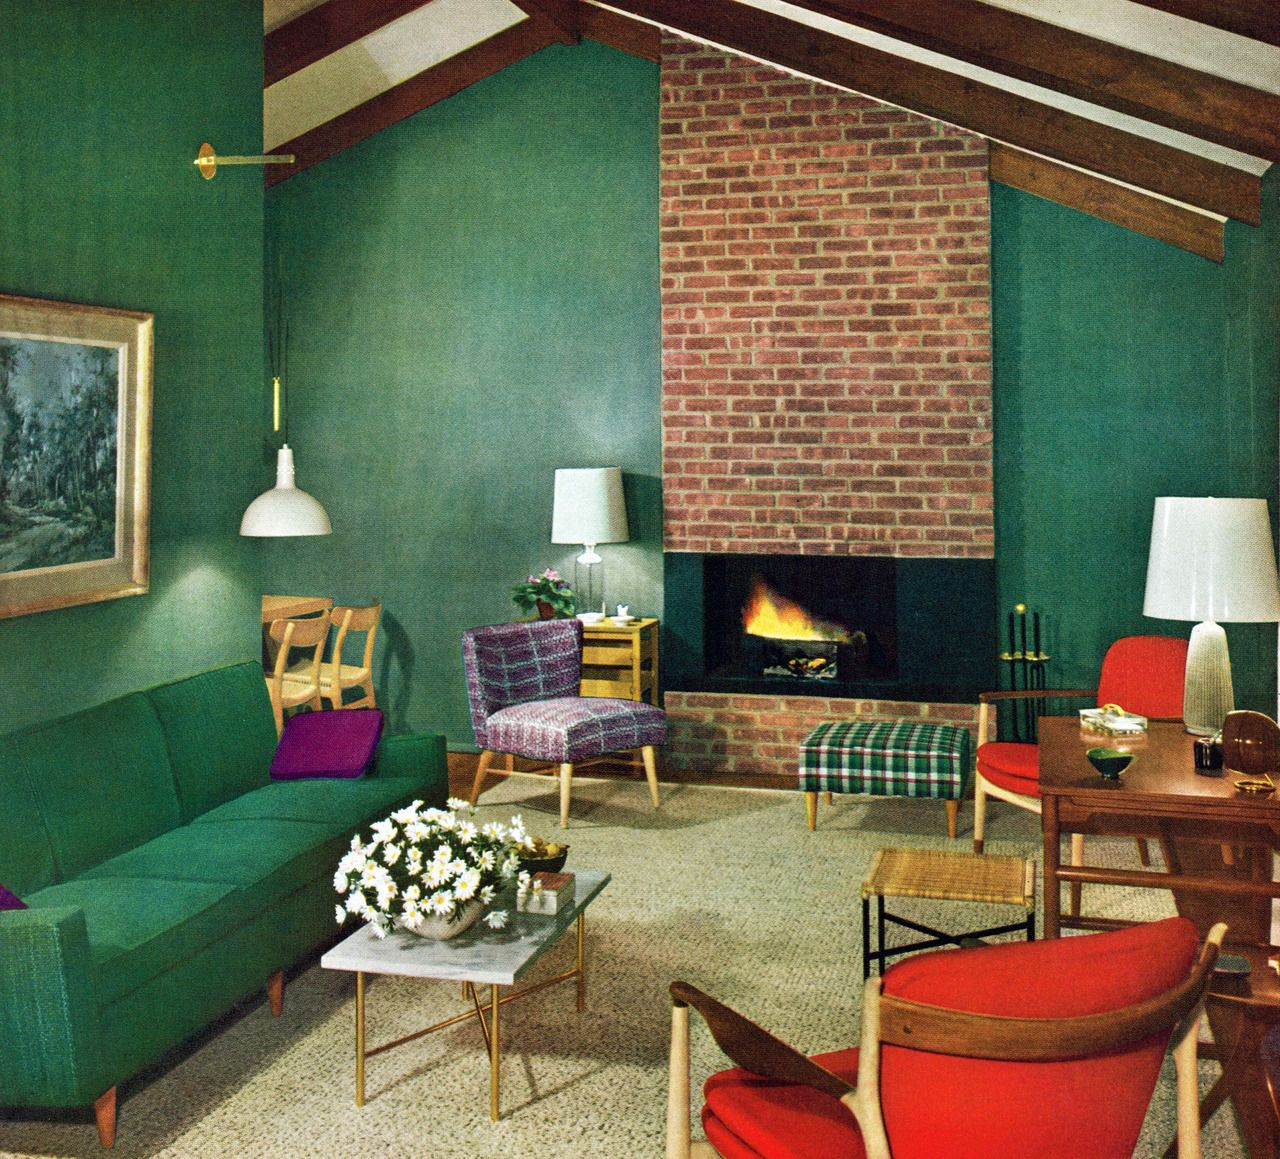 Decorating Contemporary Home Interior Design Ideas Modern: Mid-century Living Room, 1954 I Remember This And Think It